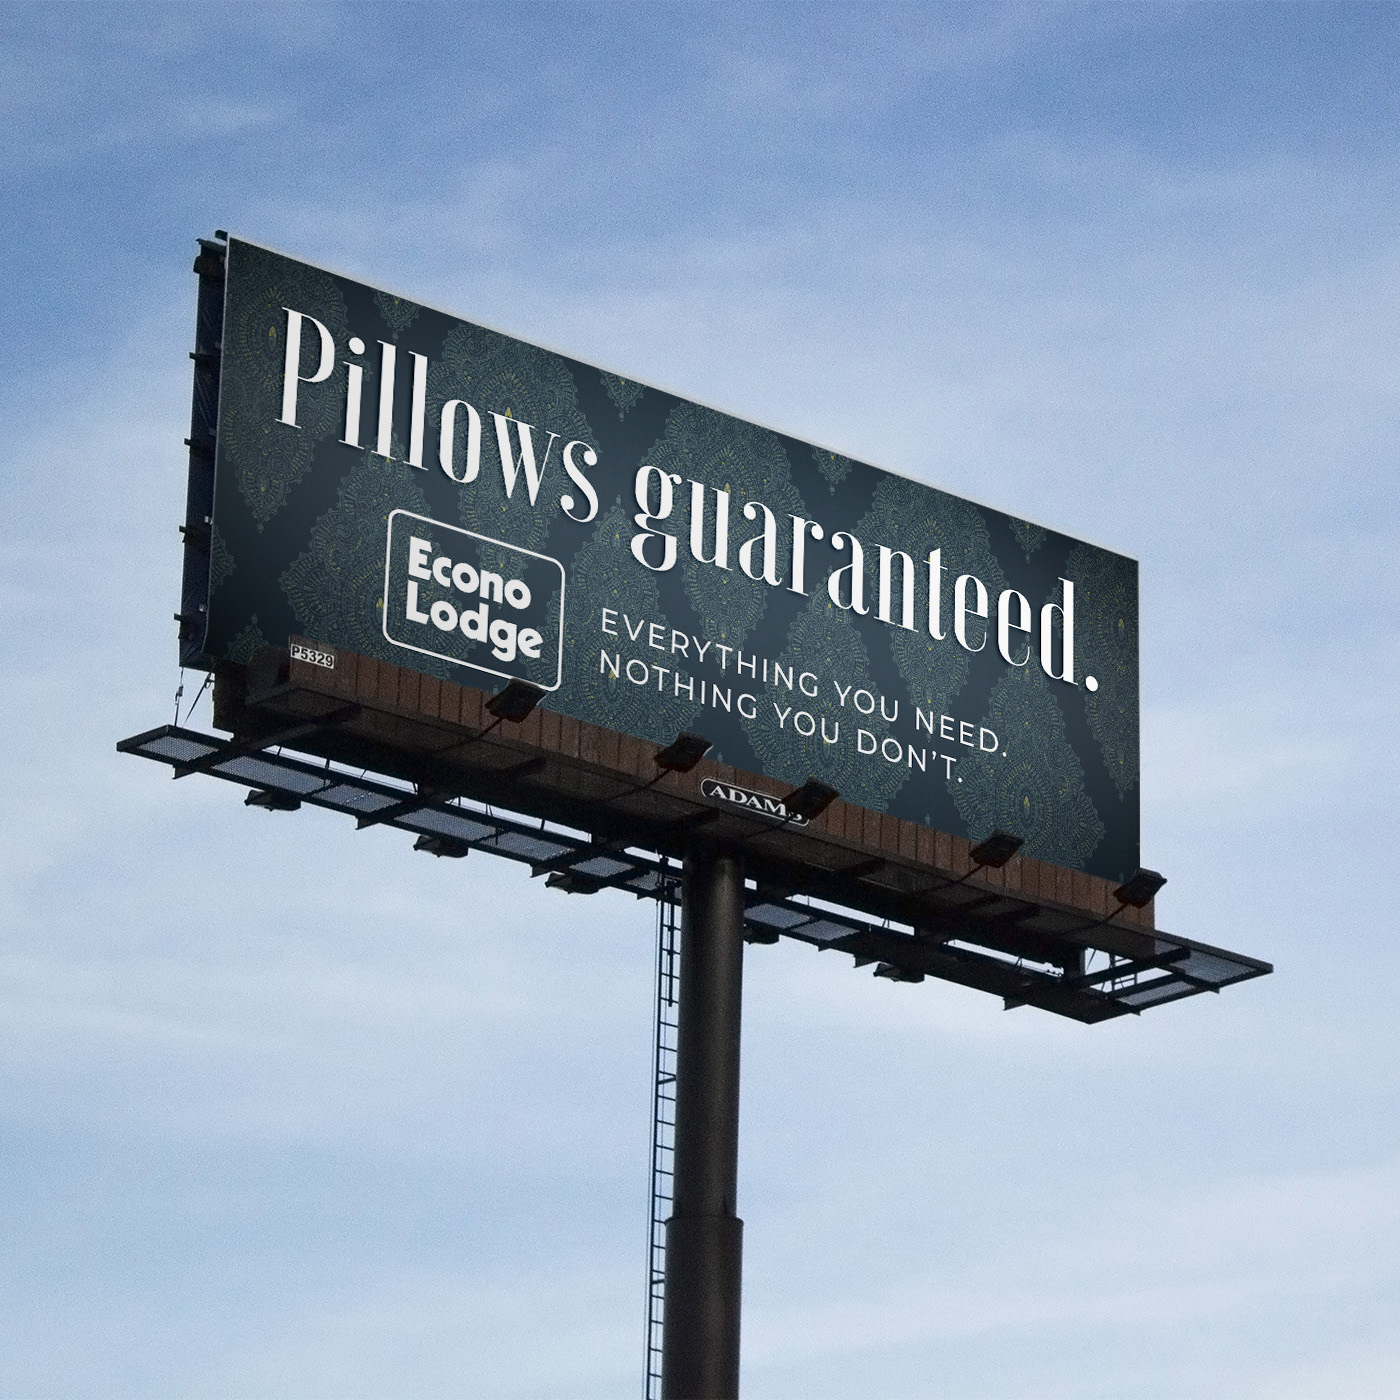 Pillows_billboard.jpg